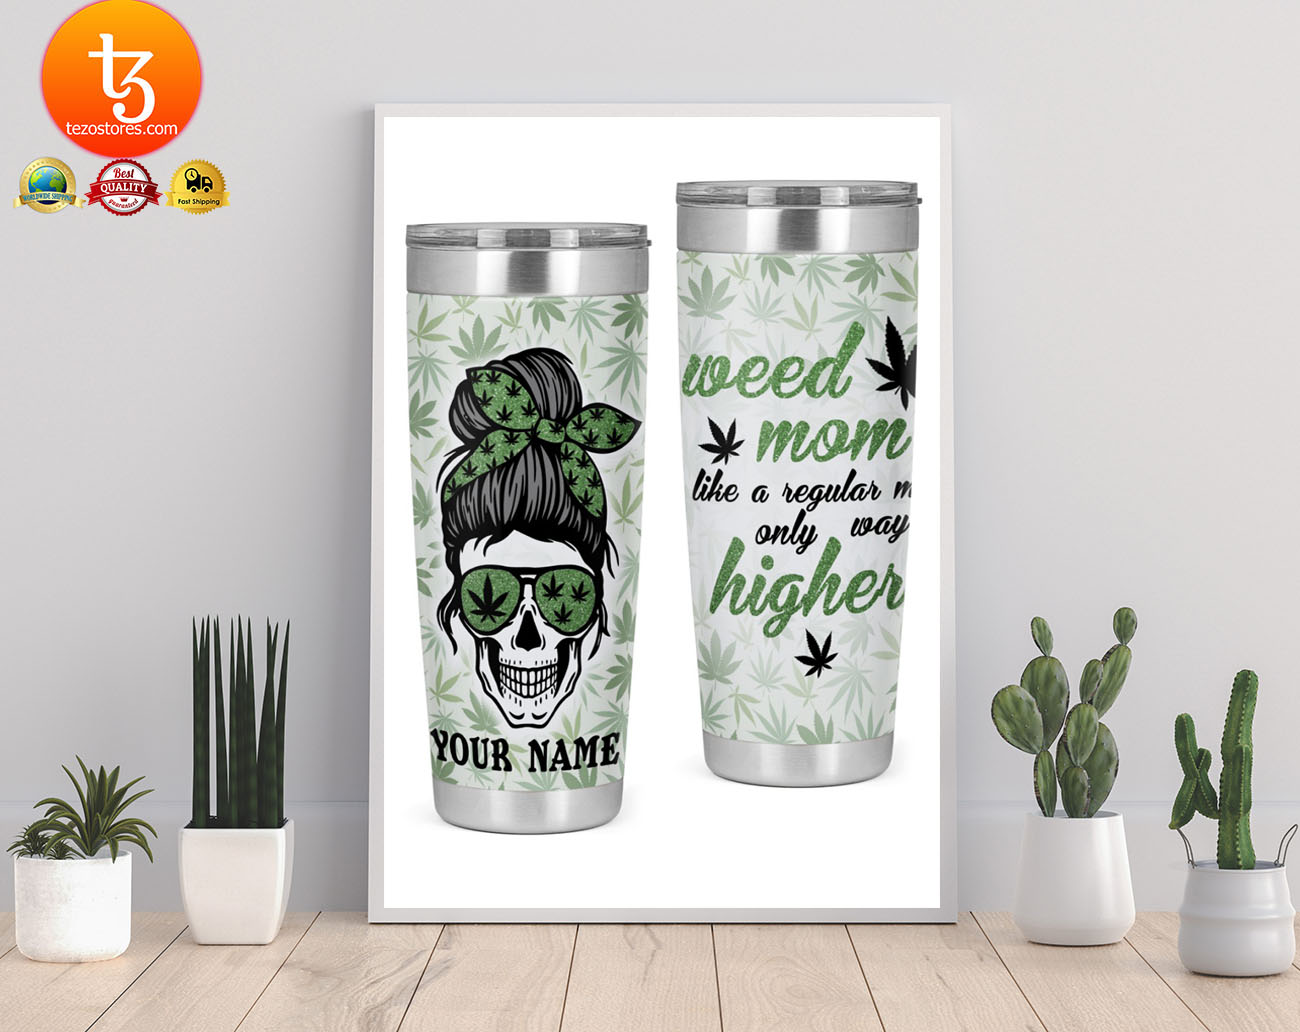 Weed mom like a regular mom only way higher custom name tumbler 19